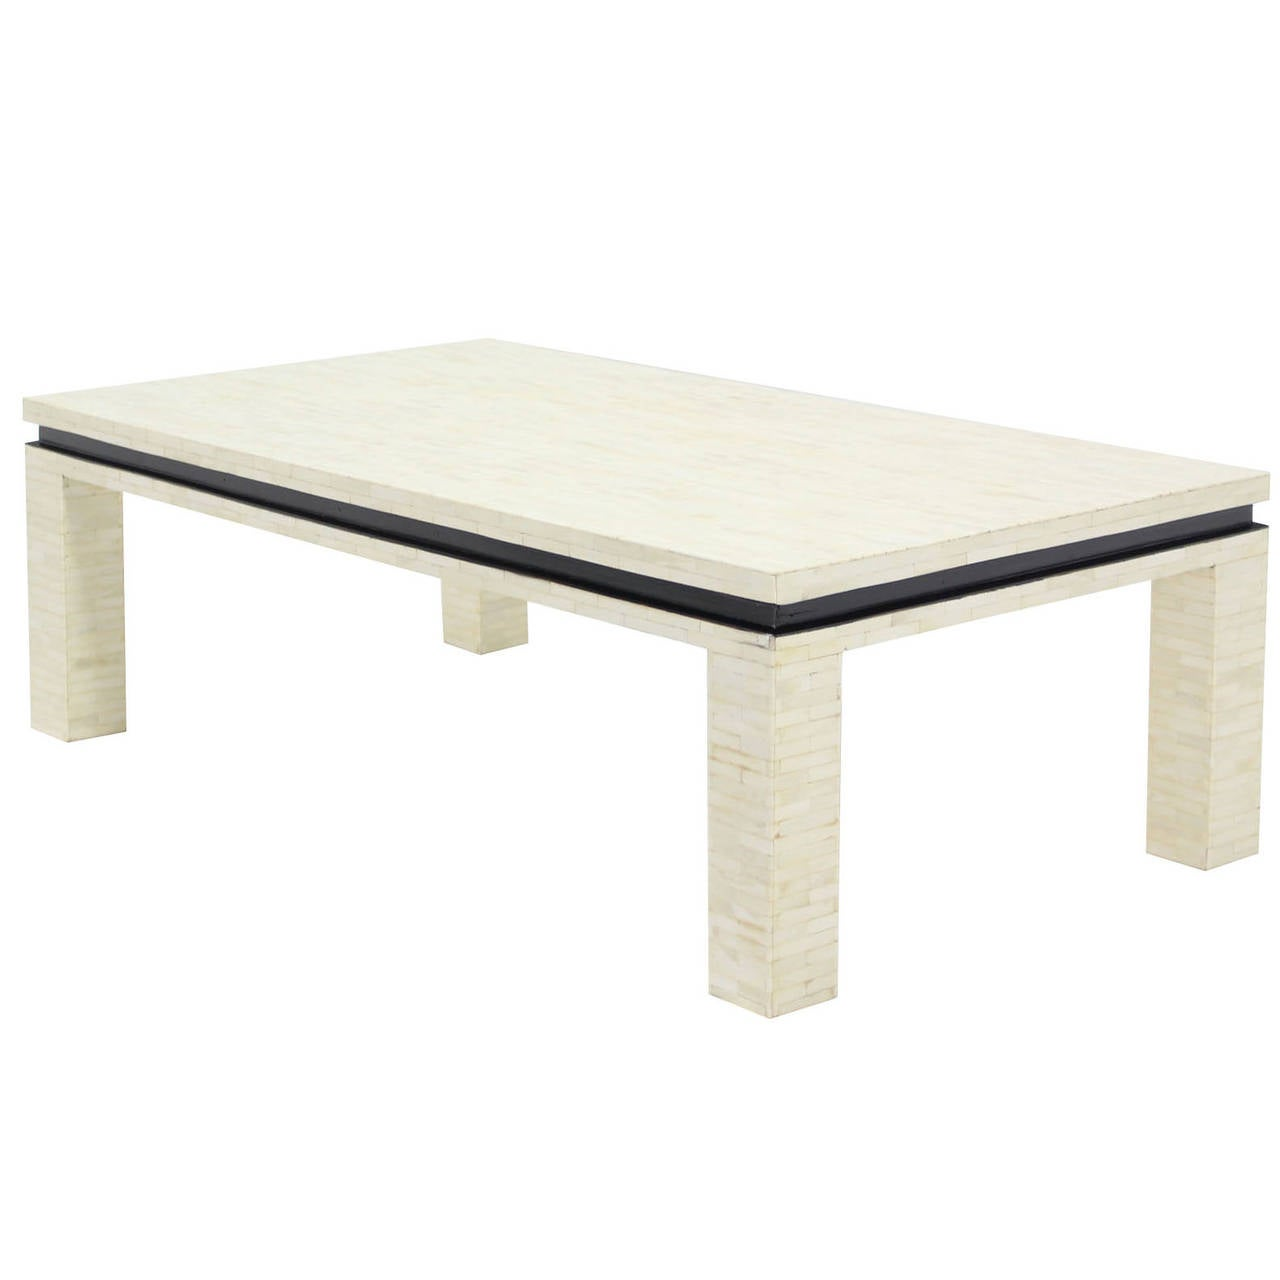 Bone Tile Rectangle Coffee Table At 1stdibs